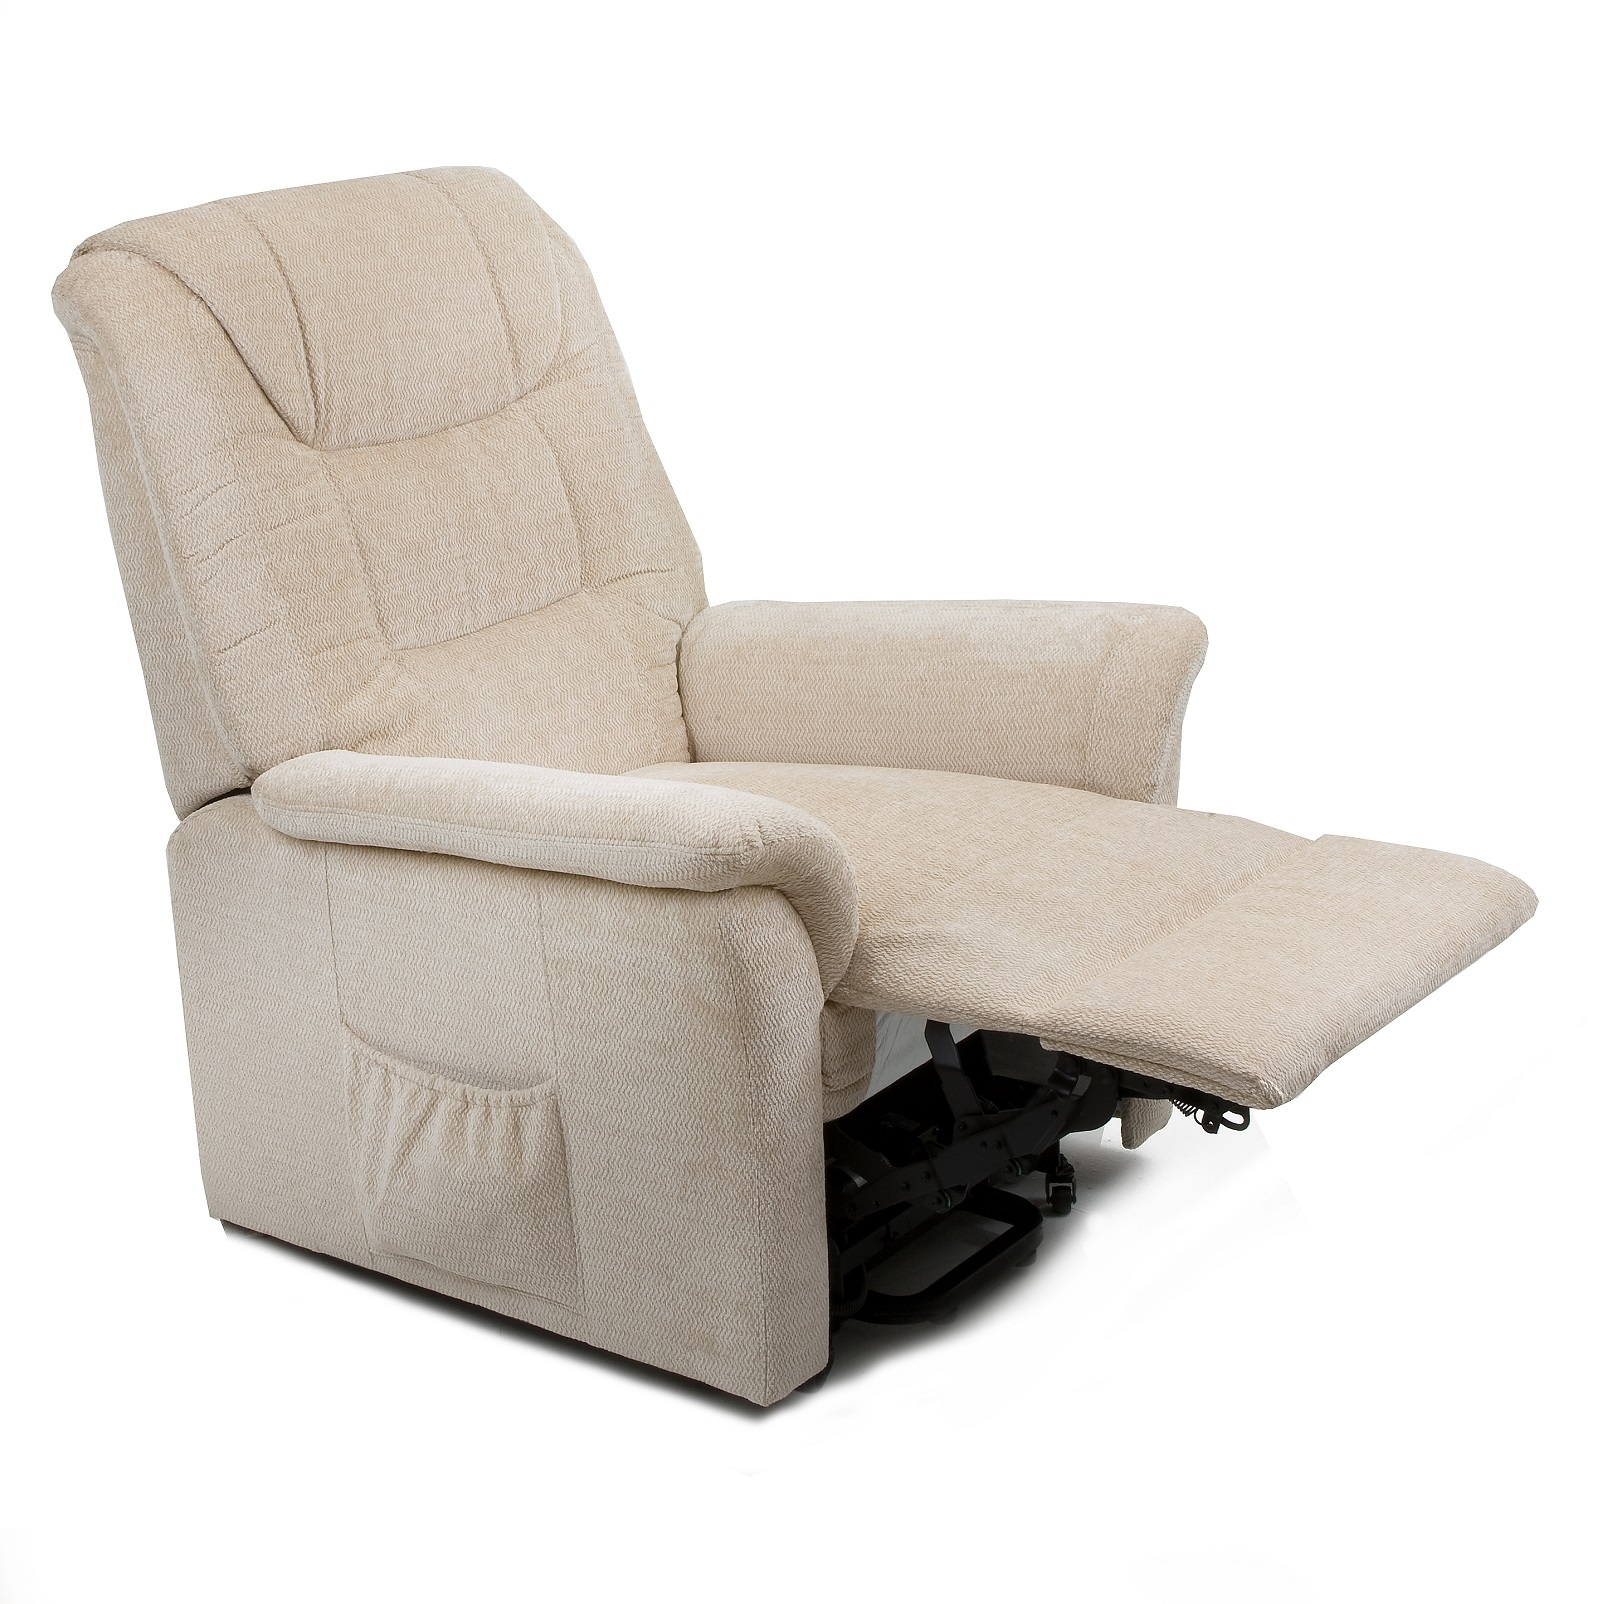 Riva dual motor rise and recliner chair elite care direct for Dual motor recliner chairs